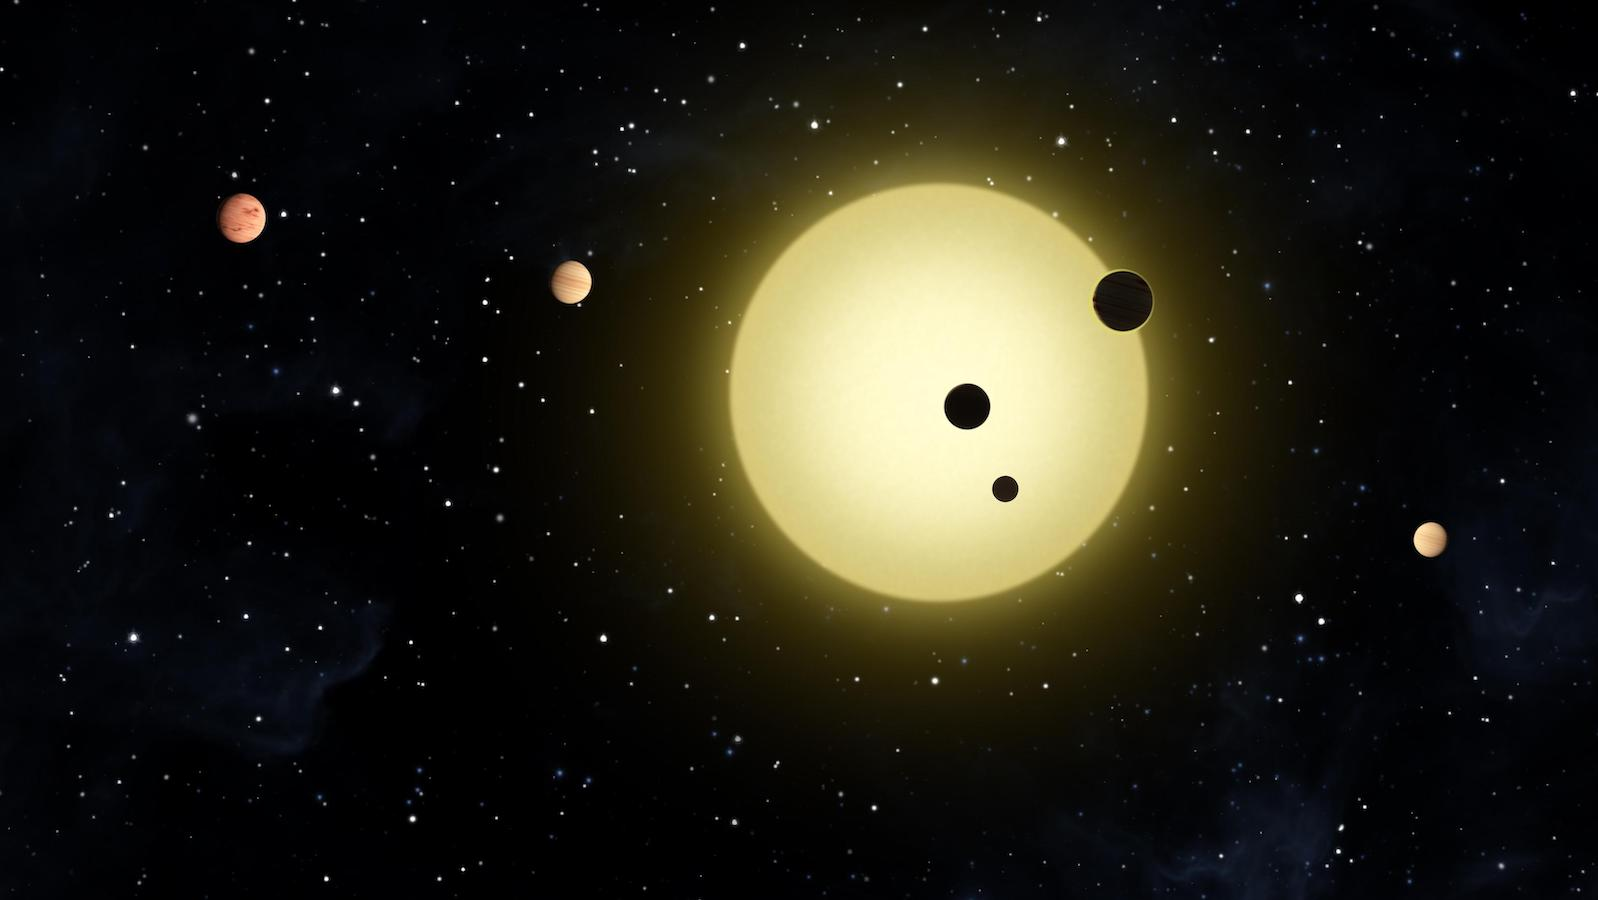 slide 5 - Artist's rendering of a 6-planet system